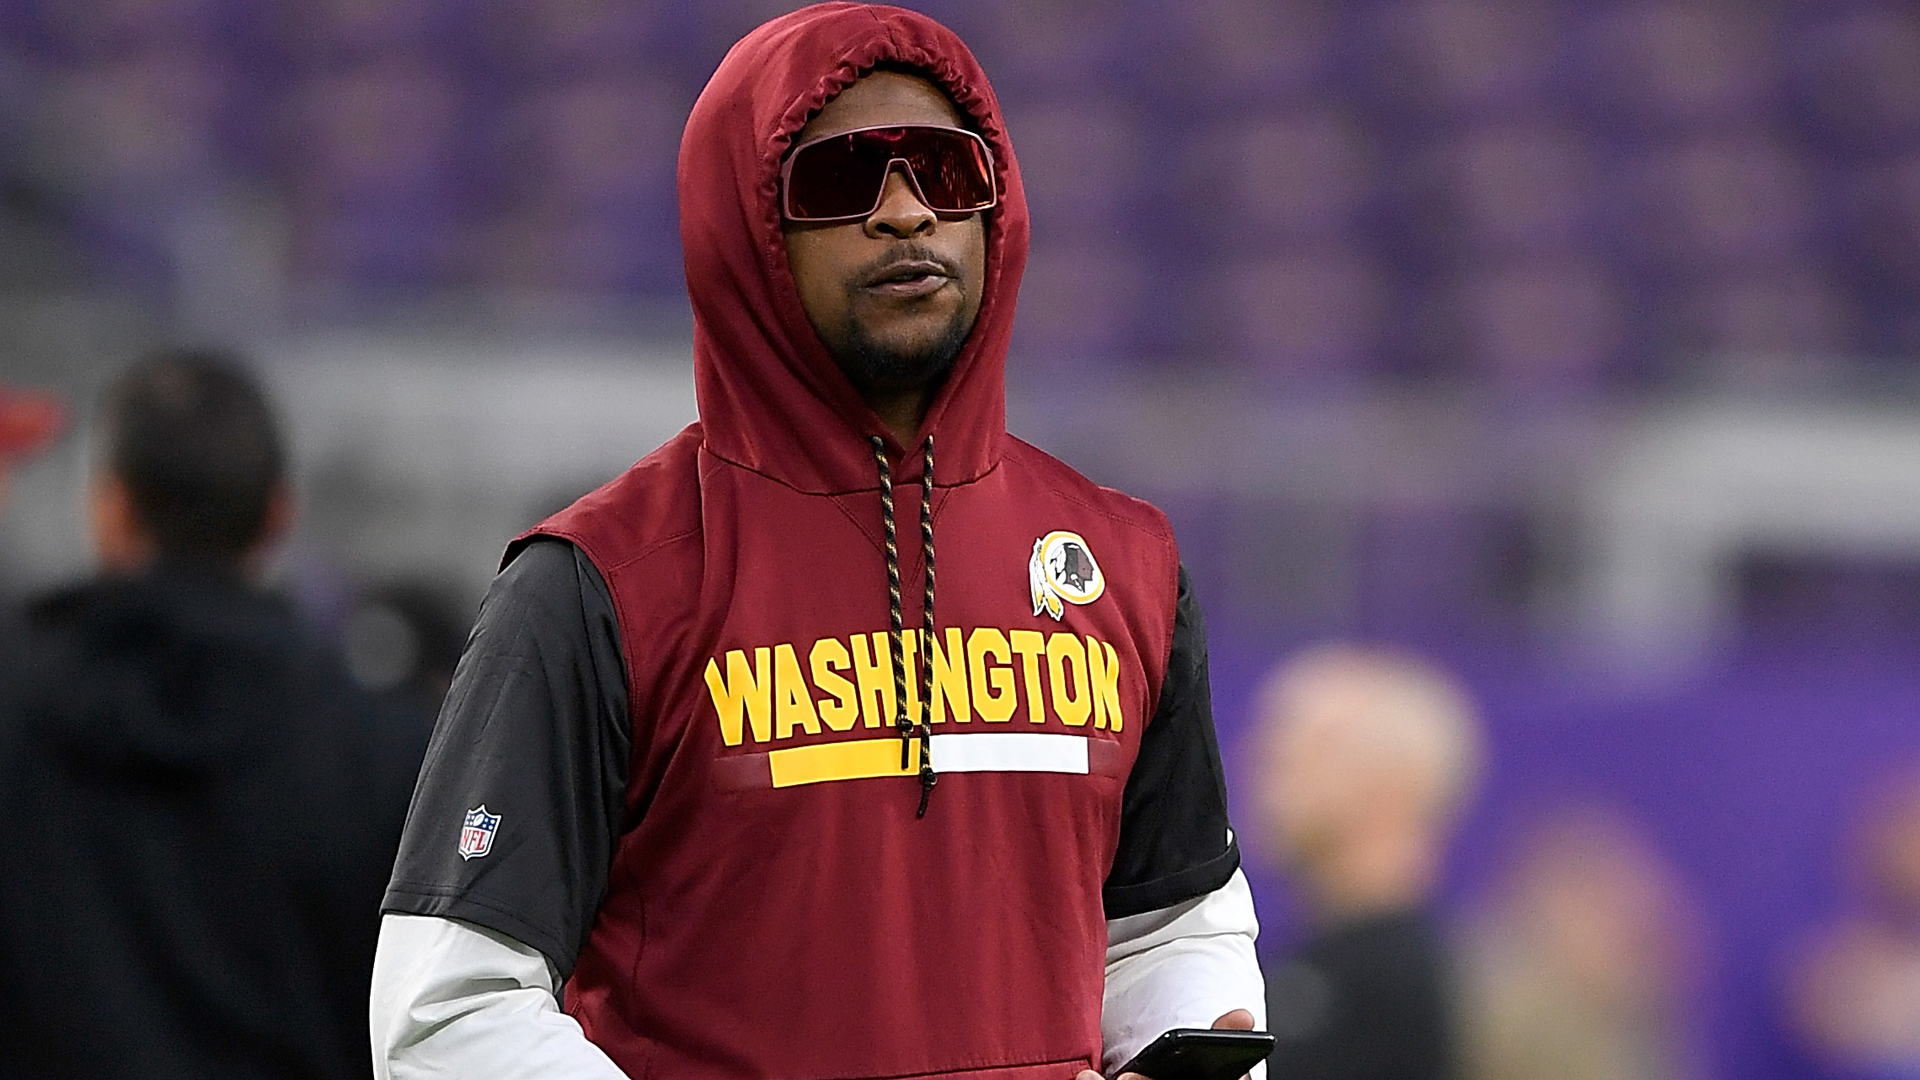 Montae Nicholson of the Washington Redskins walks on the field before the game against the Minnesota Vikings at U.S. Bank Stadium on October 24, 2019 in Minneapolis, Minnesota. (Credit: Hannah Foslien/Getty Images)